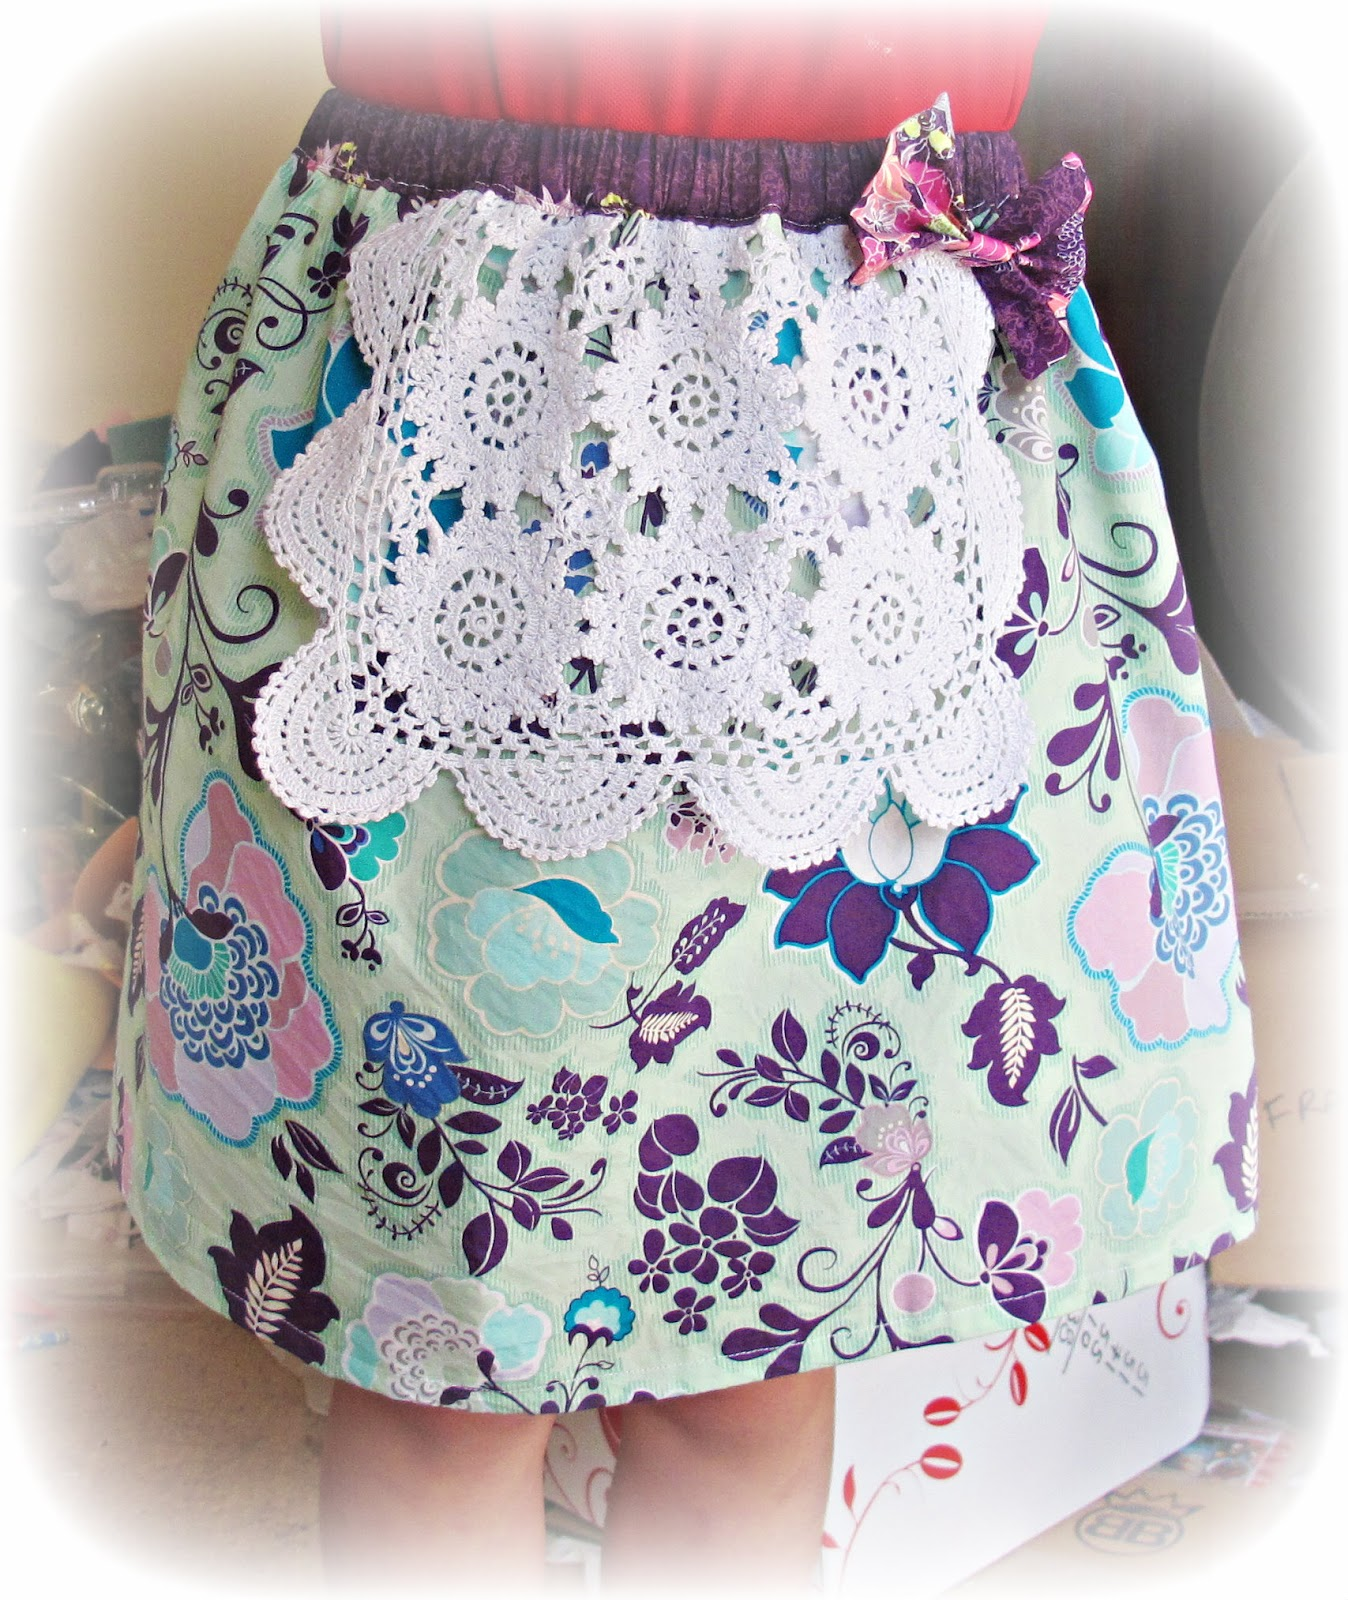 image doily apron bow skirt poetica fabric sweet melody aqua art gallery serenade moon light purple